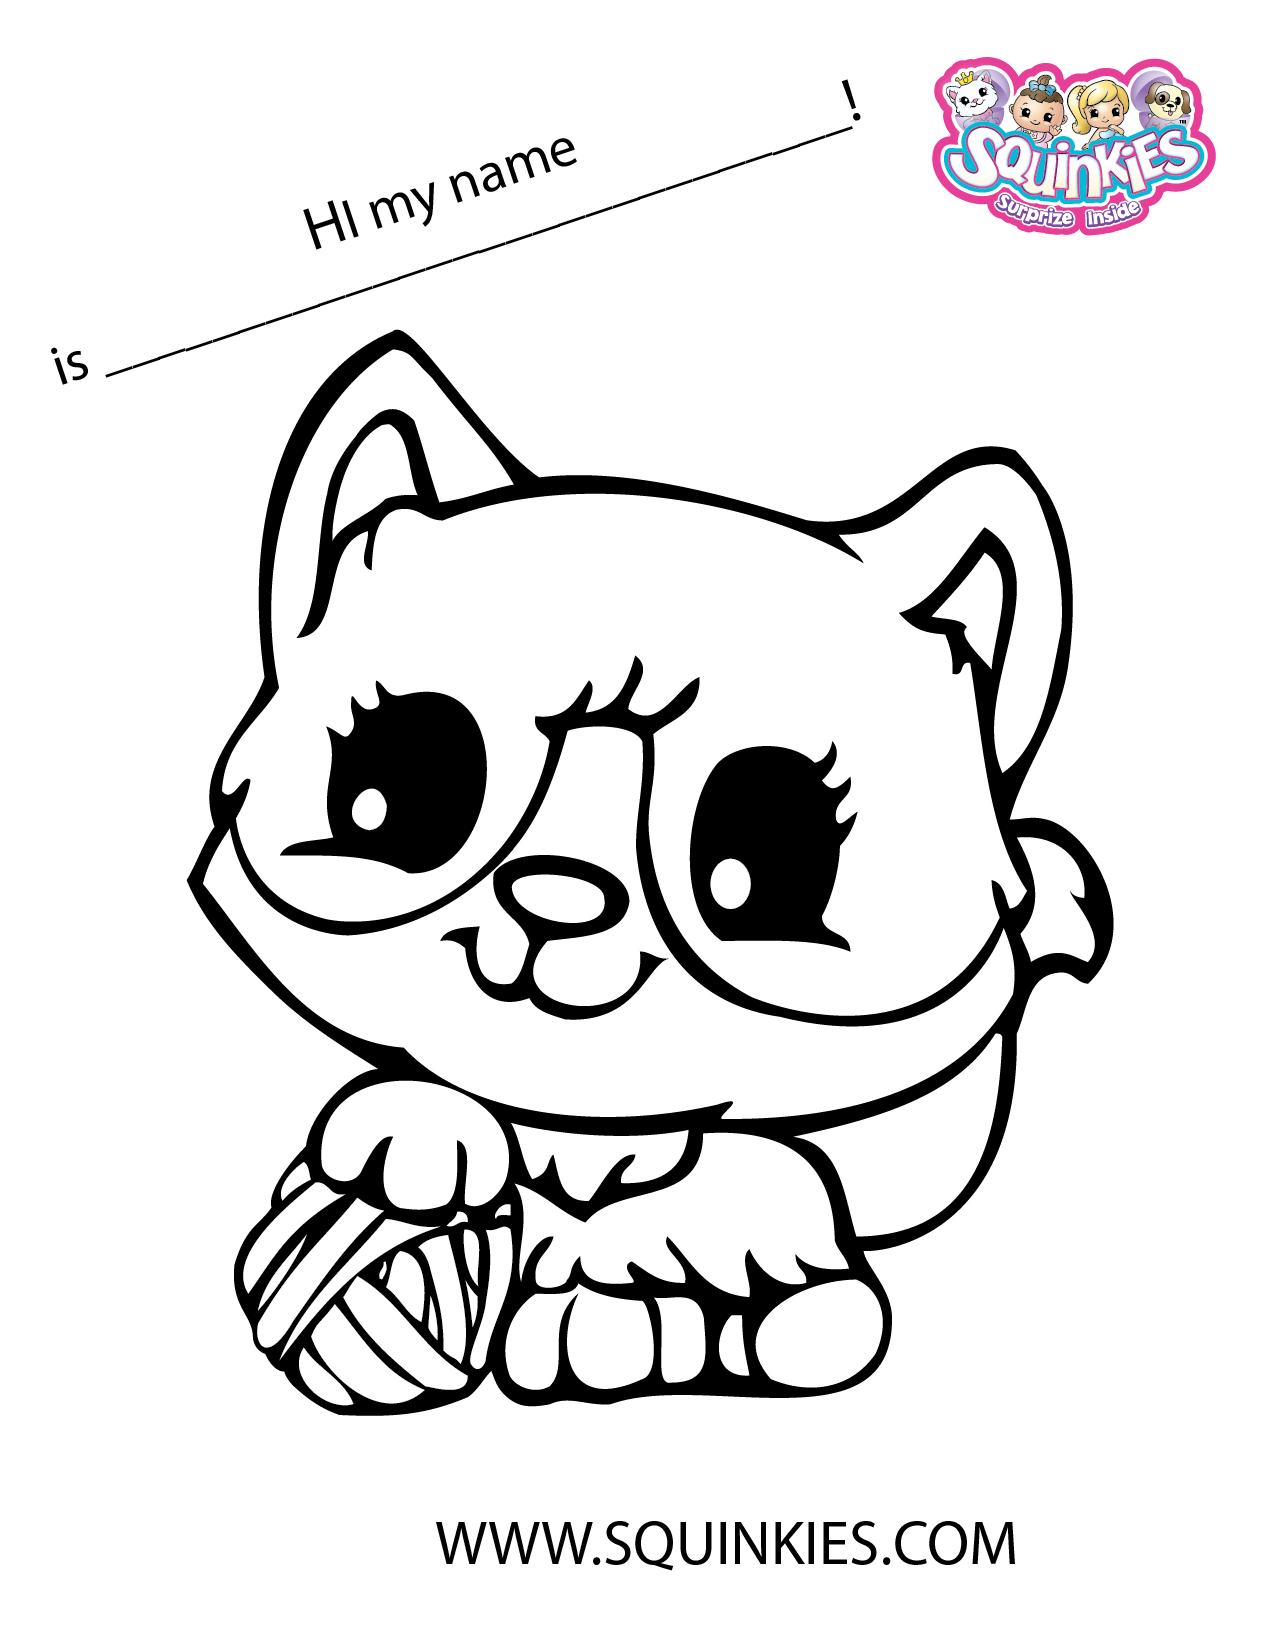 Heaven clipart colouring page. Squinkies coloring megs own